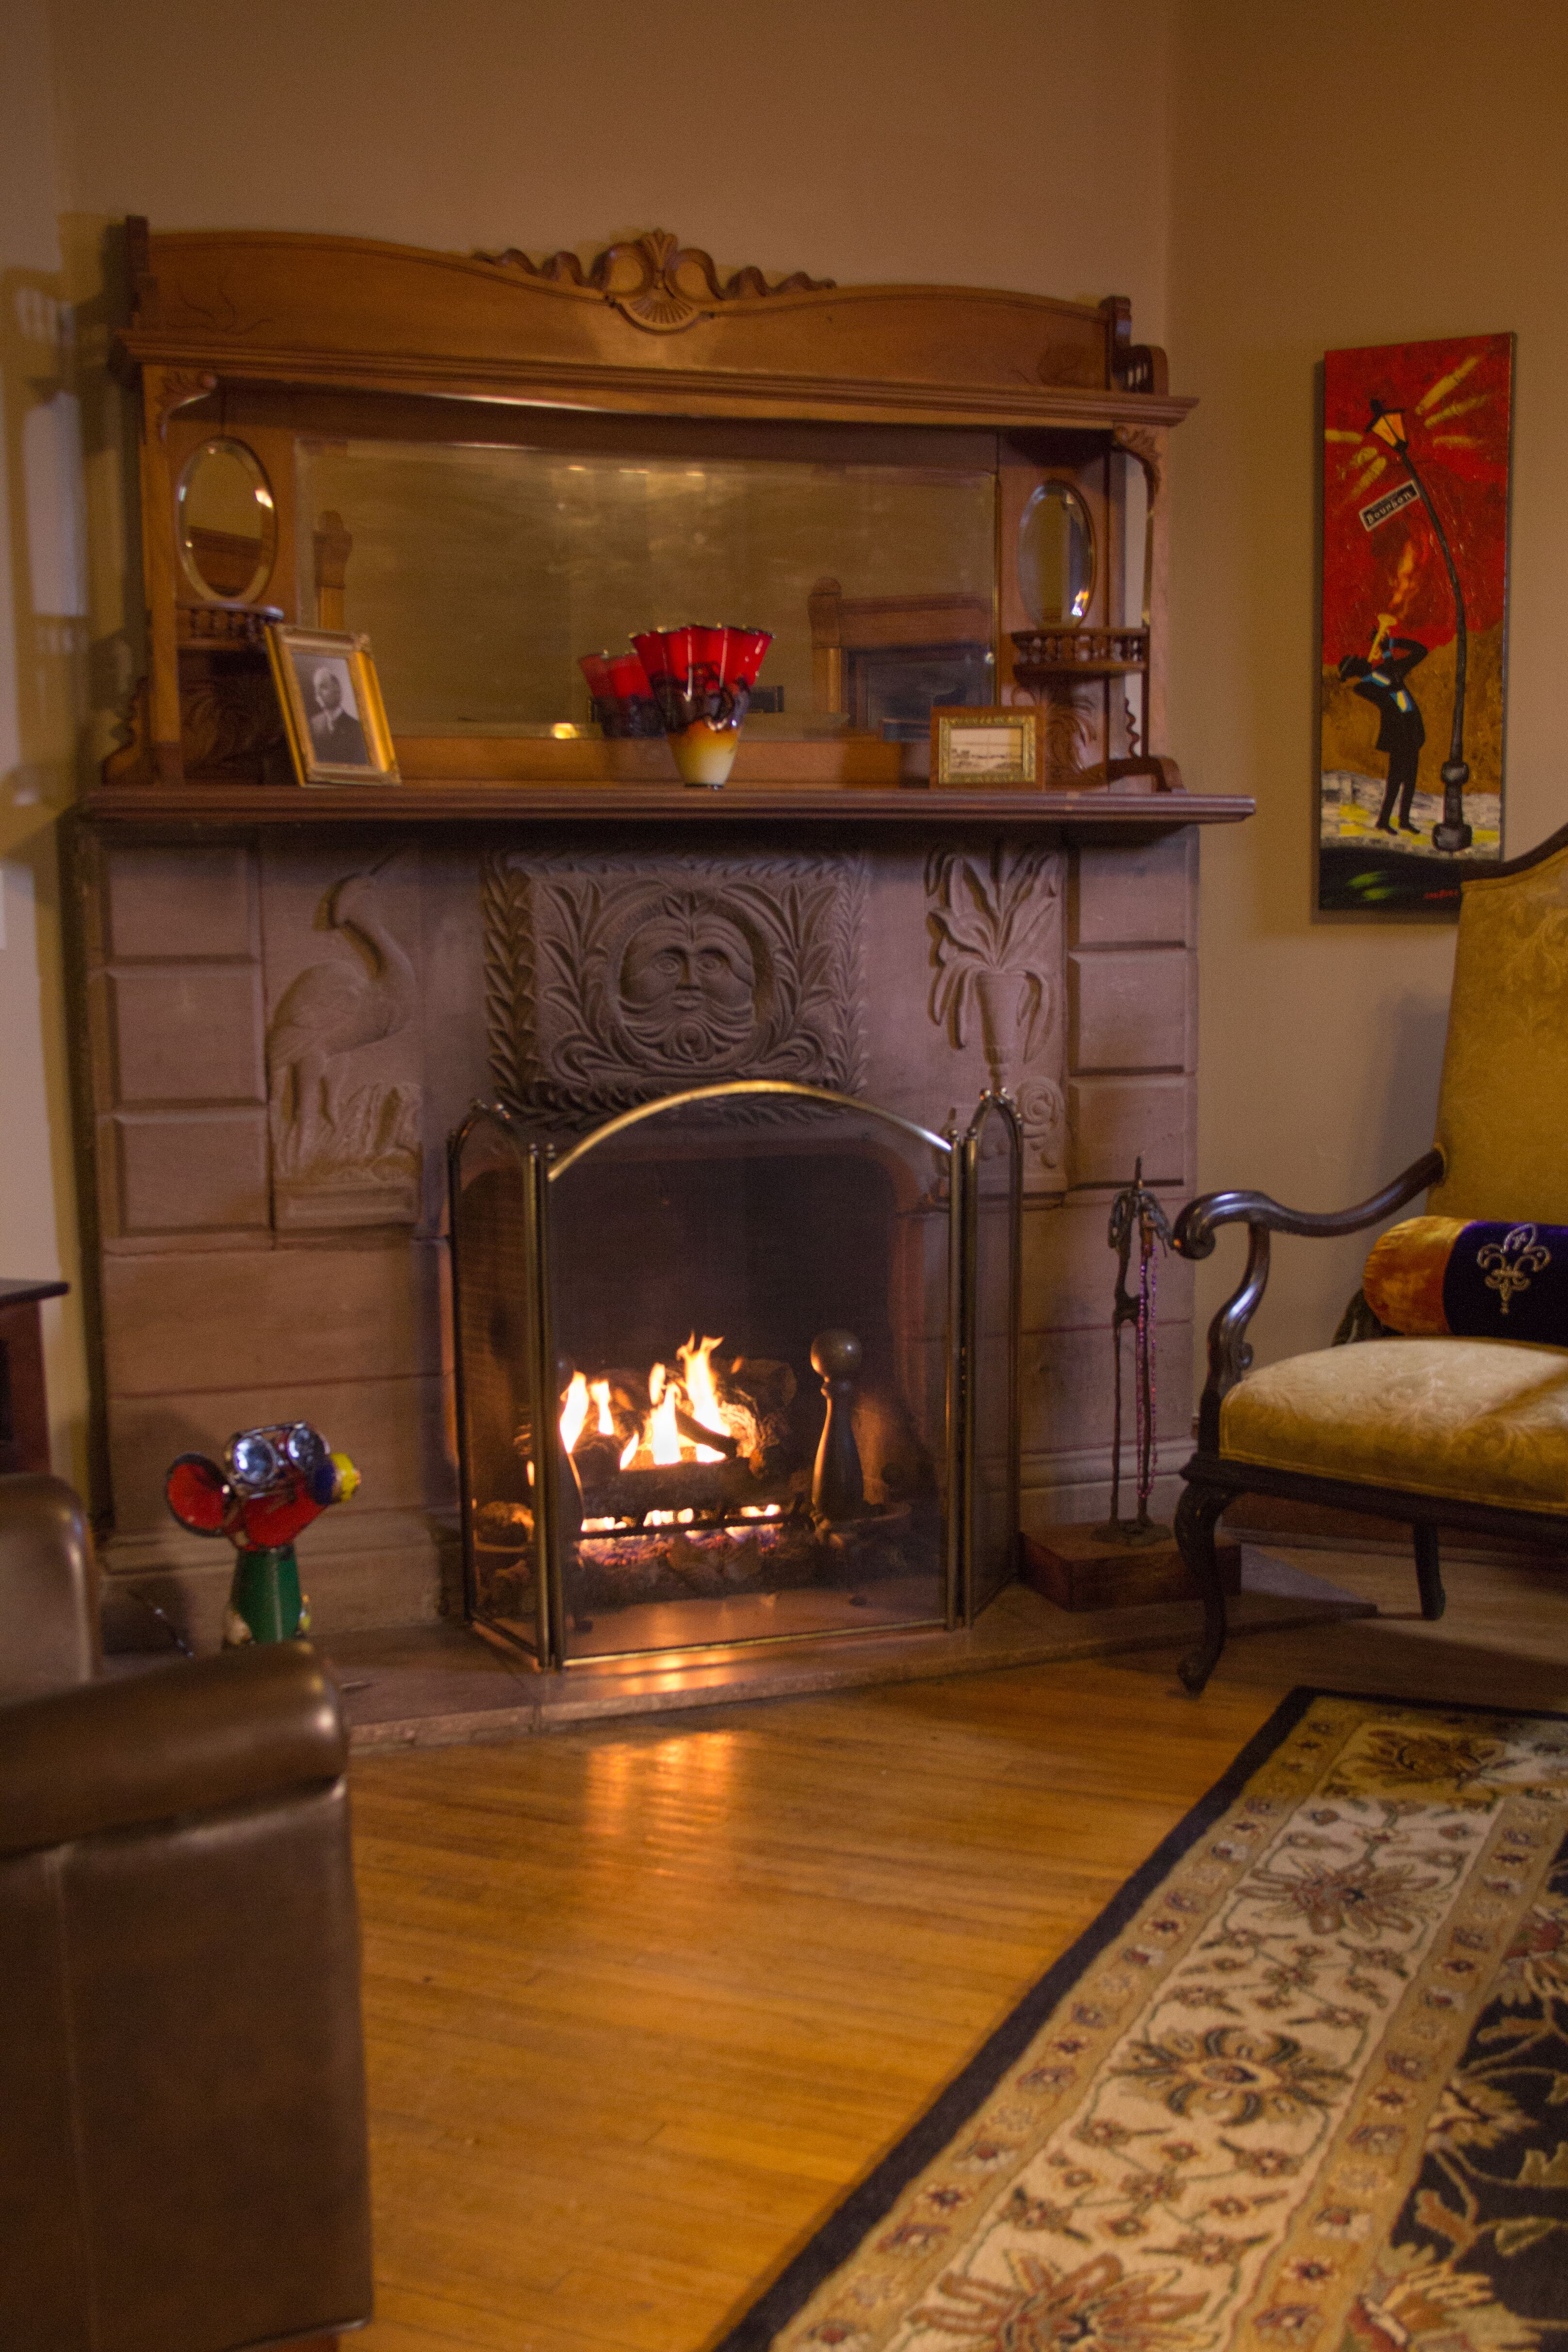 brownstone carved fireplace with roaring fire with mantle and mirror and a gold antique chair next to it